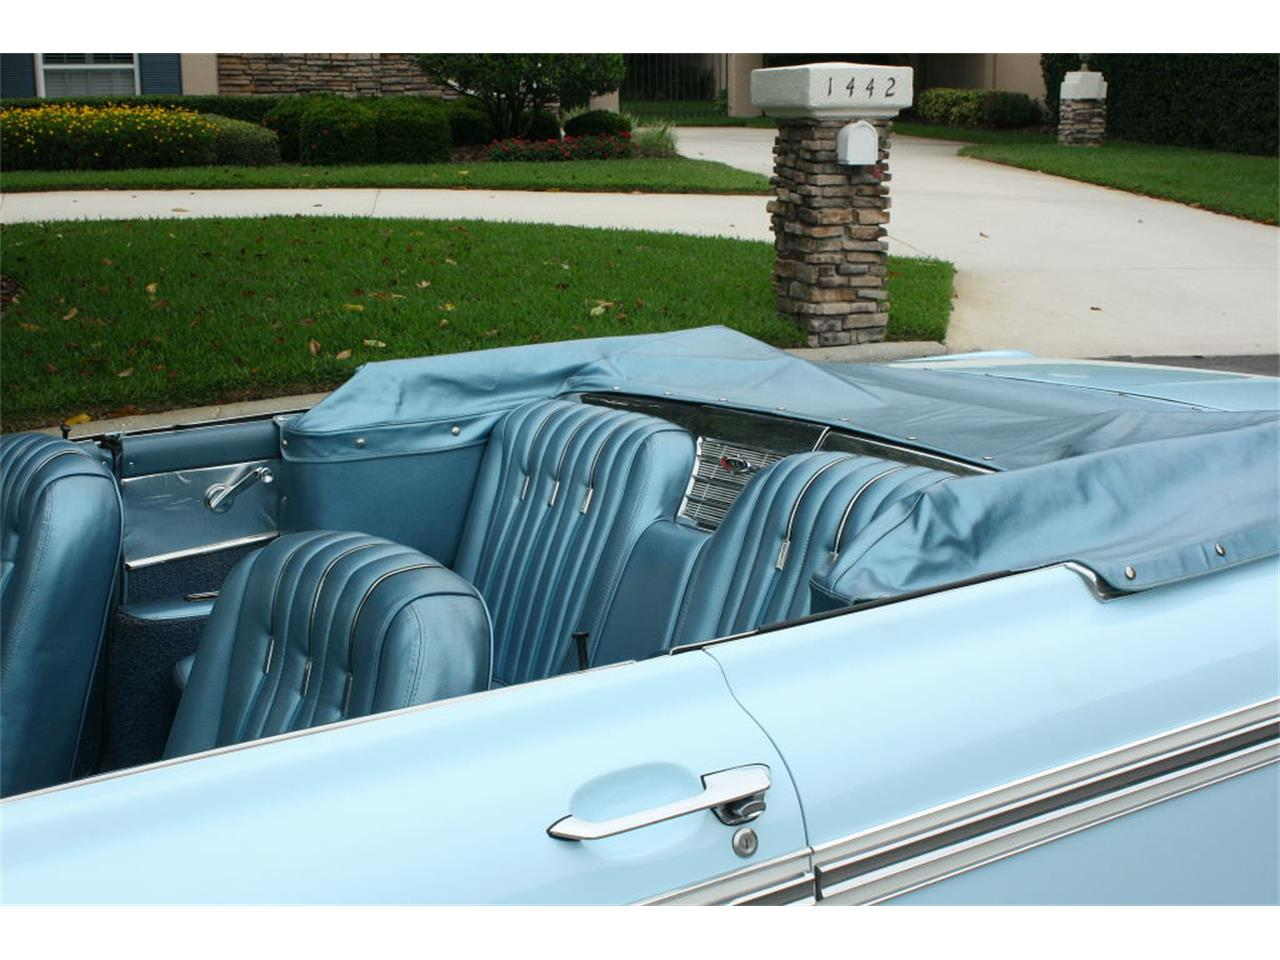 Large Picture of Classic '62 Galaxie located in Lakeland Florida - $26,500.00 - L6EK